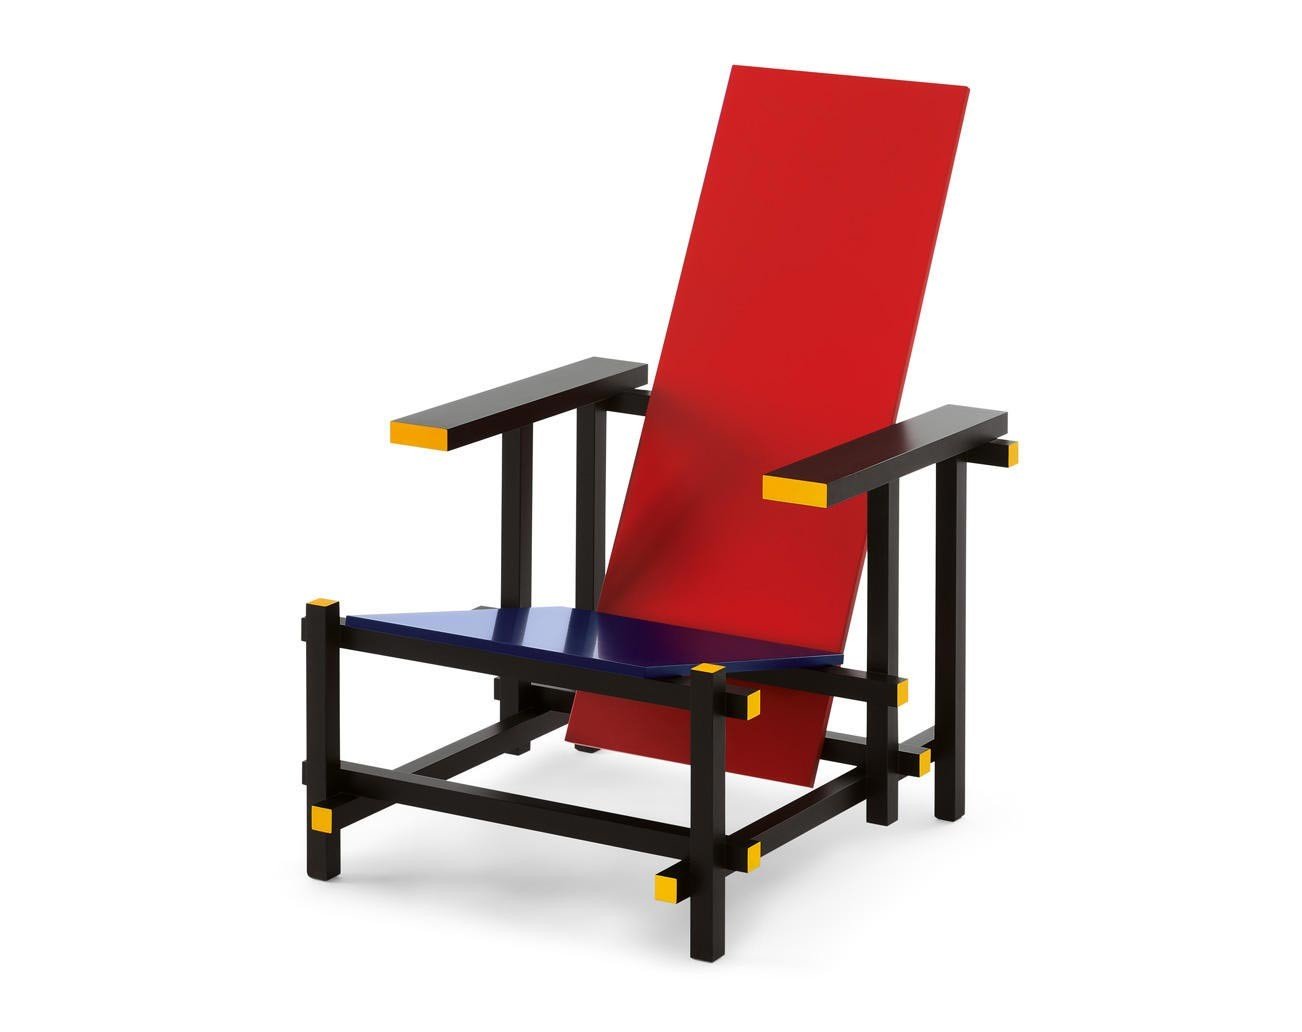 Cassina Red and blue Armchair | Deplain.com